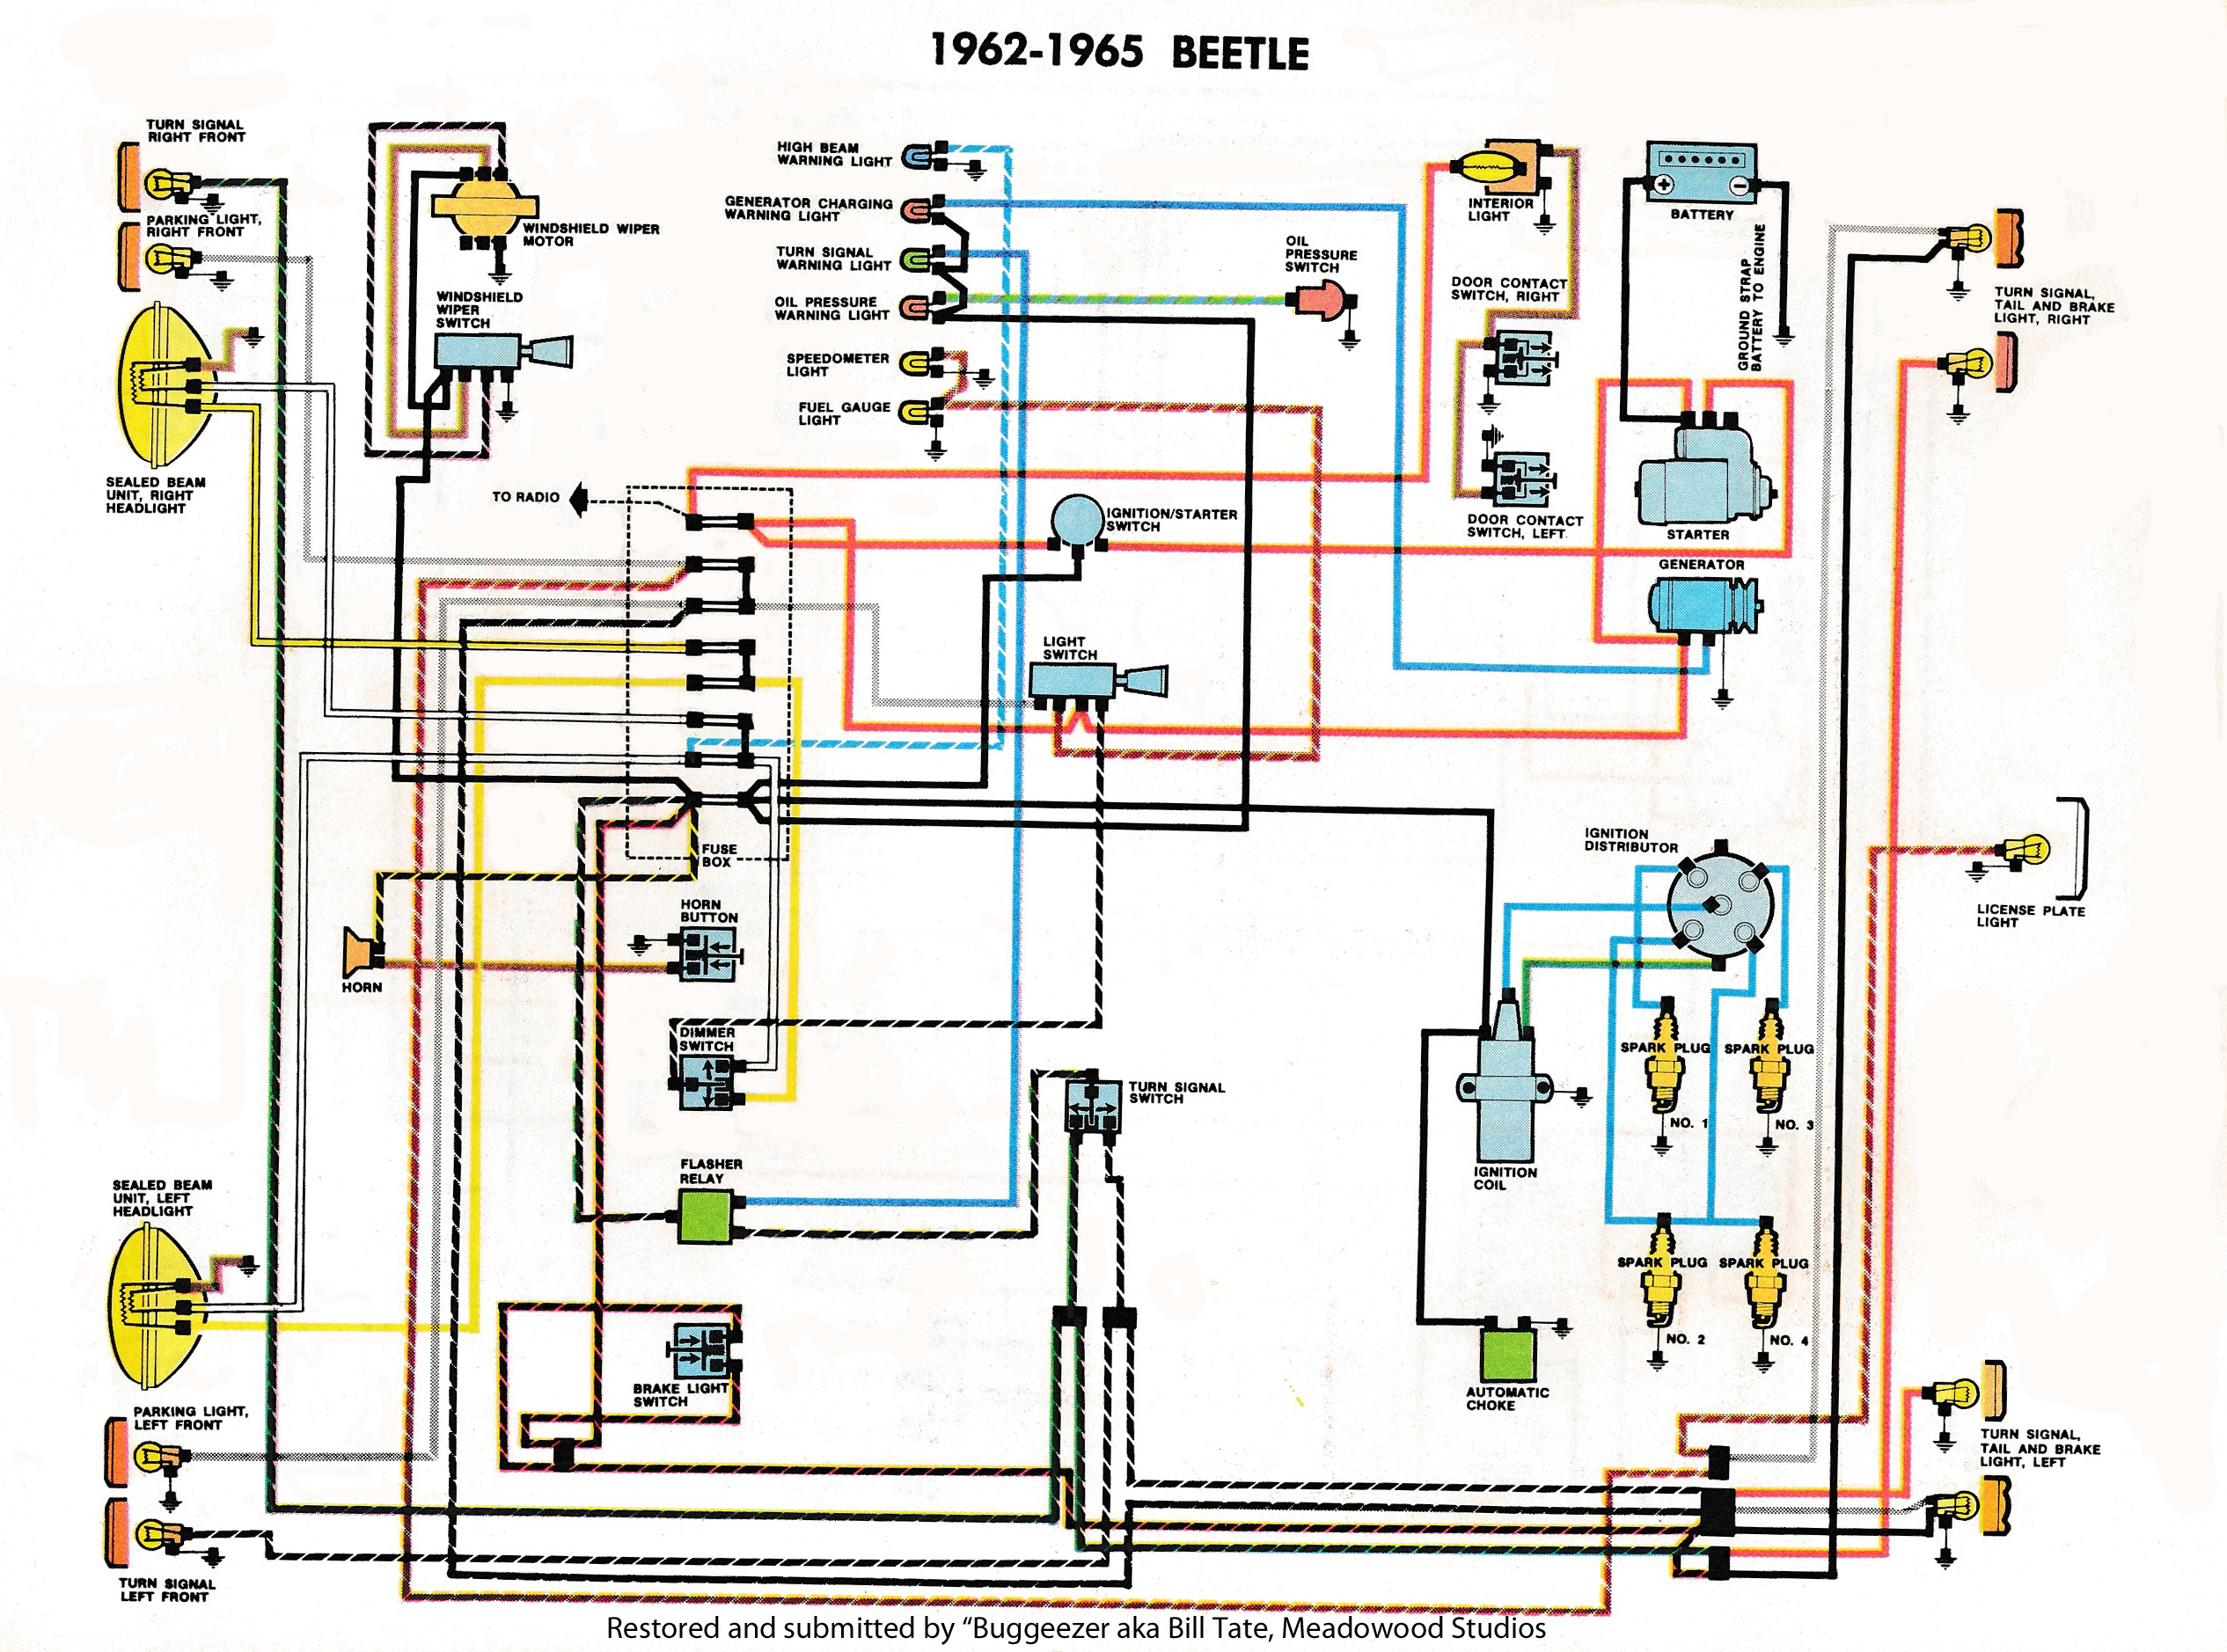 Type 1 Wiring Diagrams Bosch Wiper Diagram